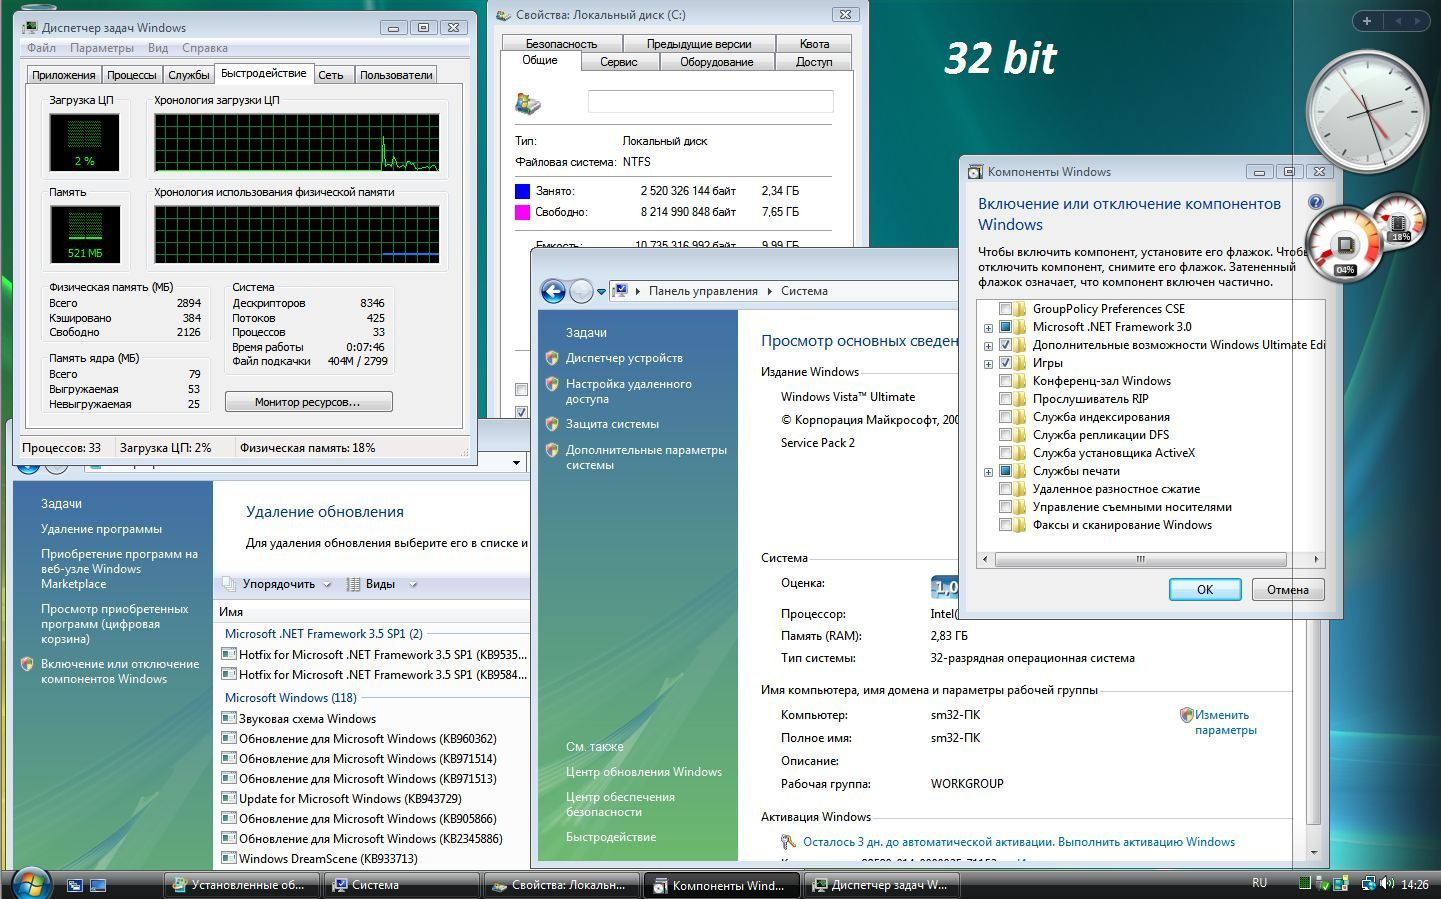 Скачать 64-bit windows 7 service pack 1